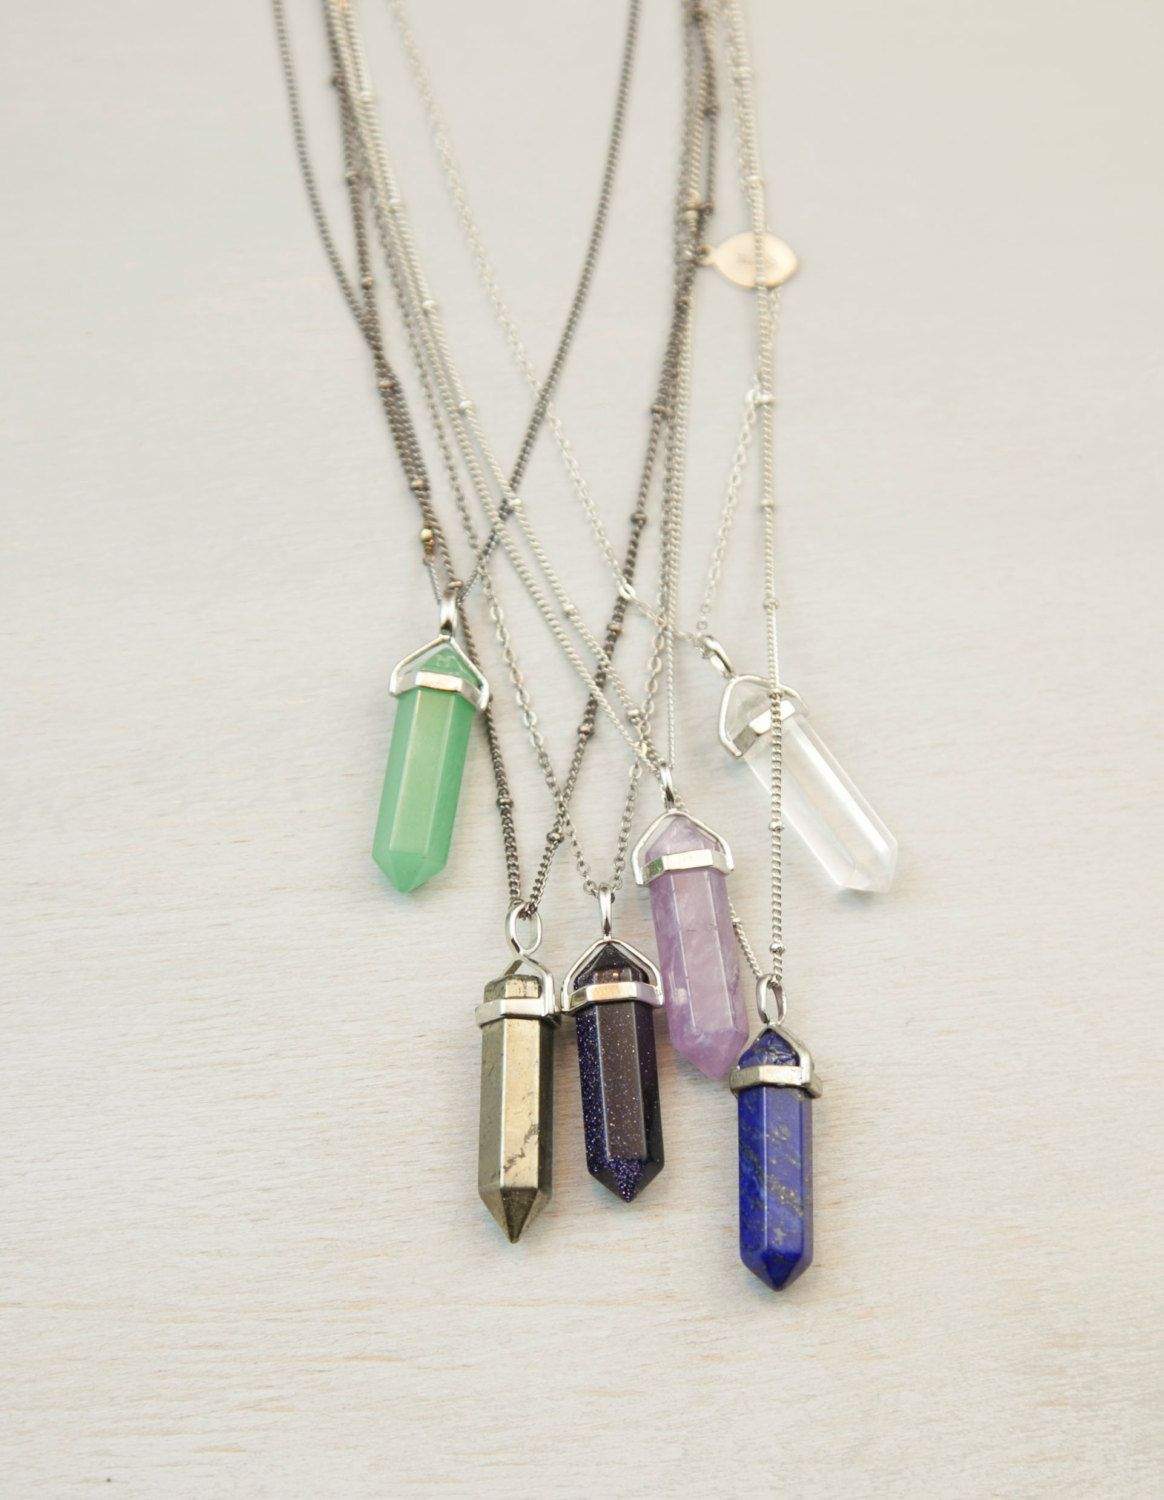 Tumblr my stylecessorized pinterest crystals jewelery log in stone necklacecrystal necklacelong aloadofball Gallery